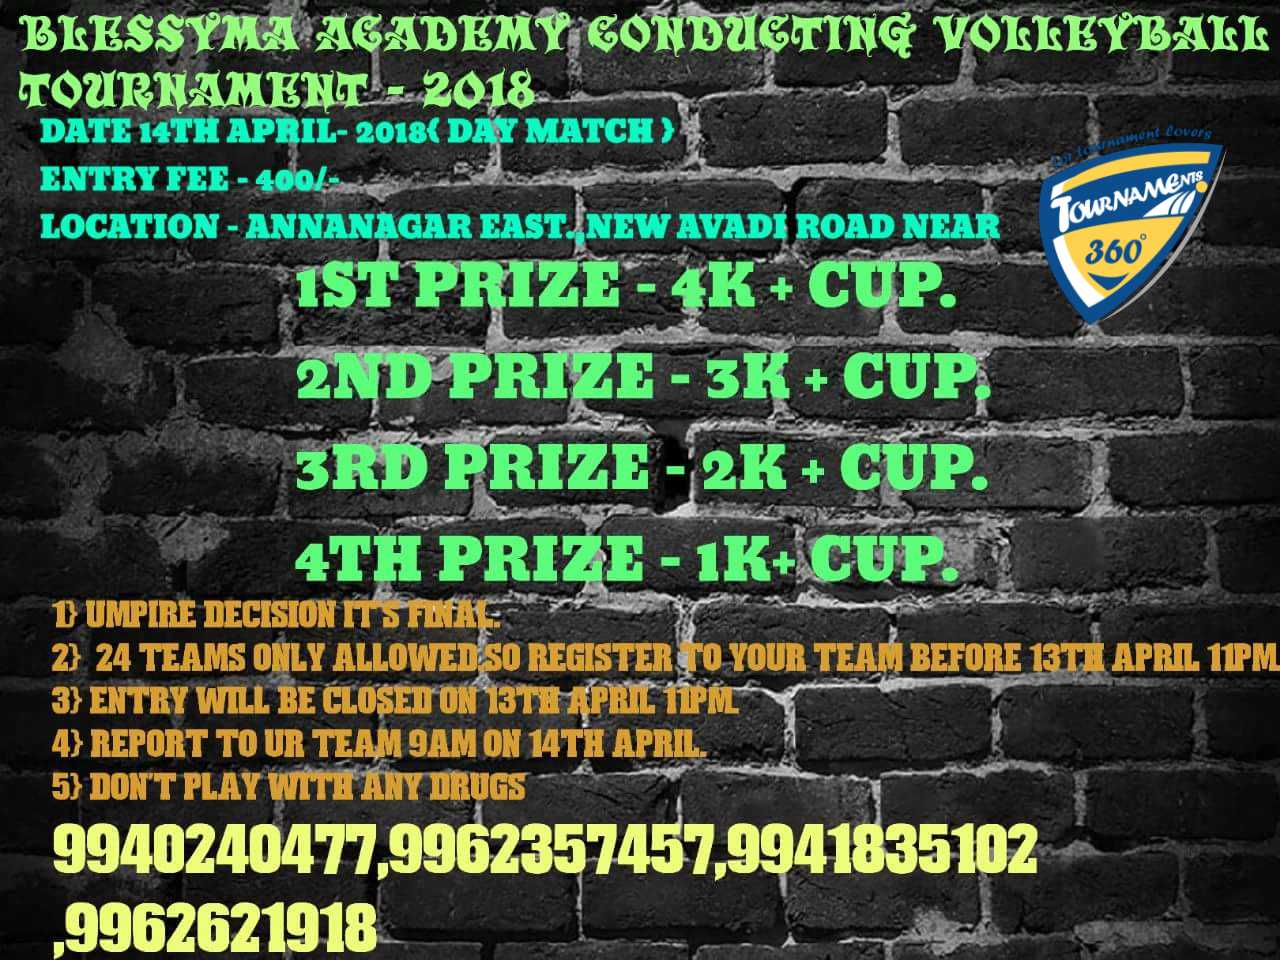 Blessyma Academy conducting Volleyball Tournament 2018